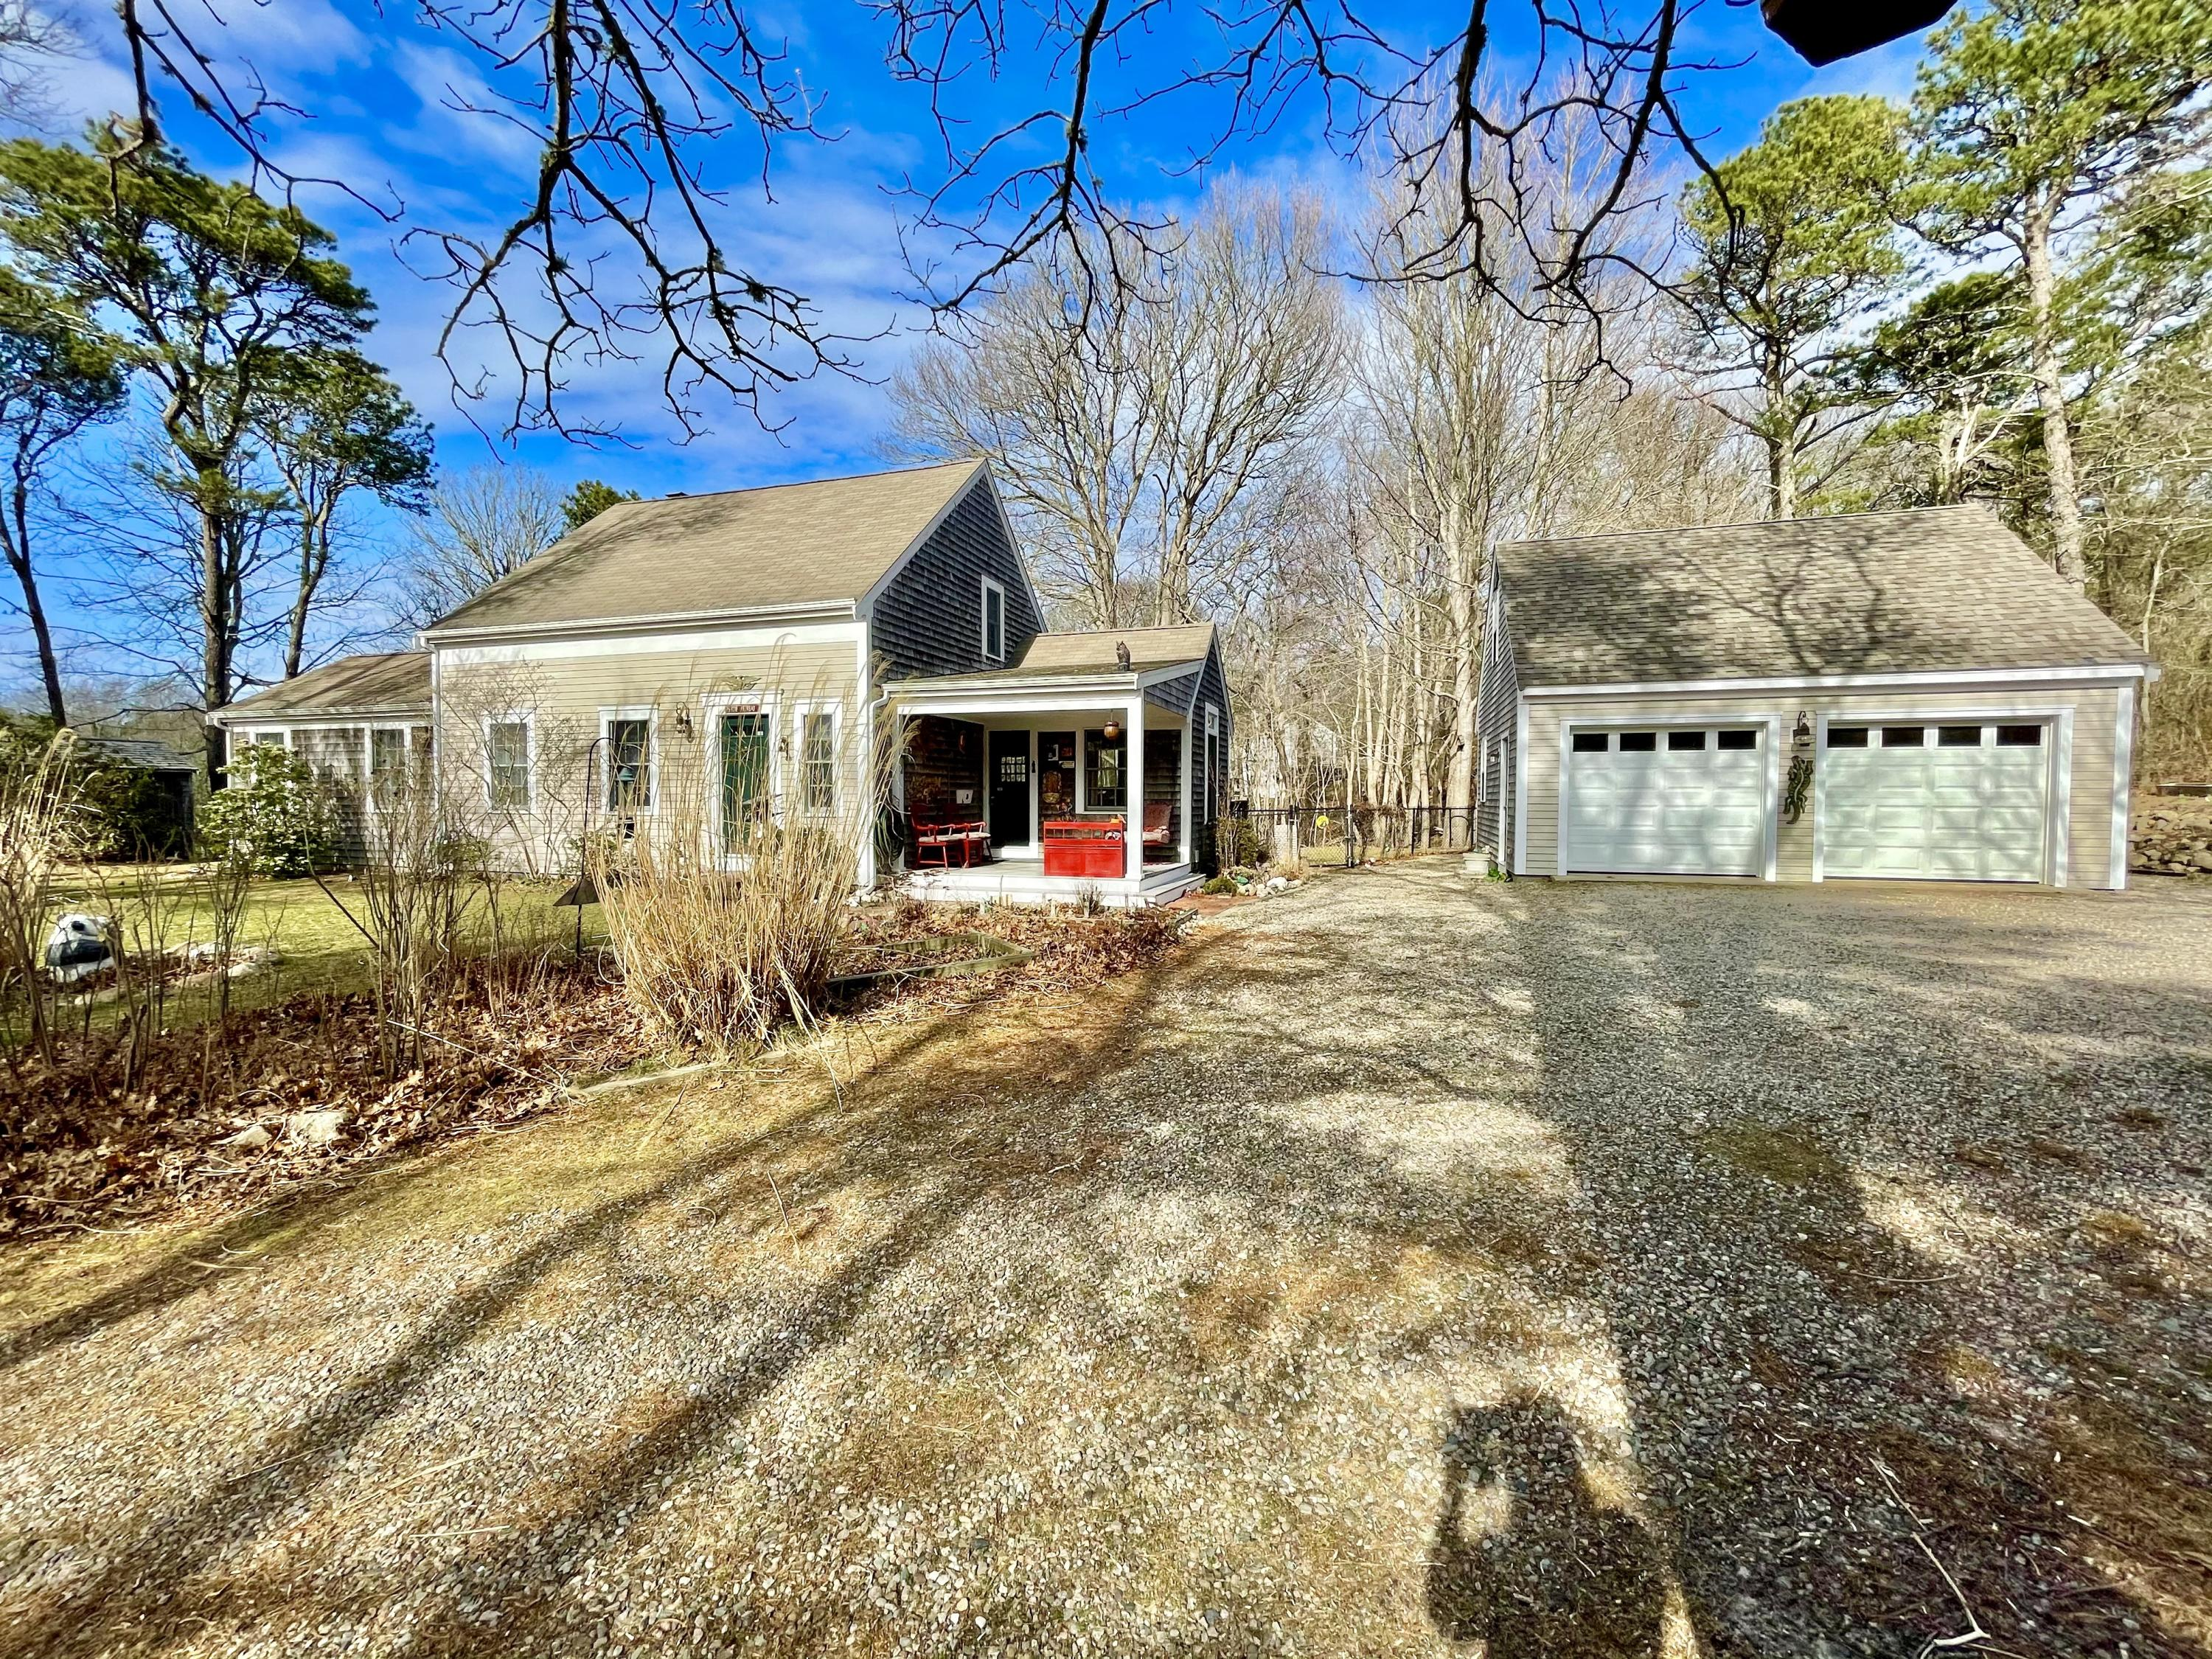 click to view more details 51 Holly Avenue, Brewster, MA 02631